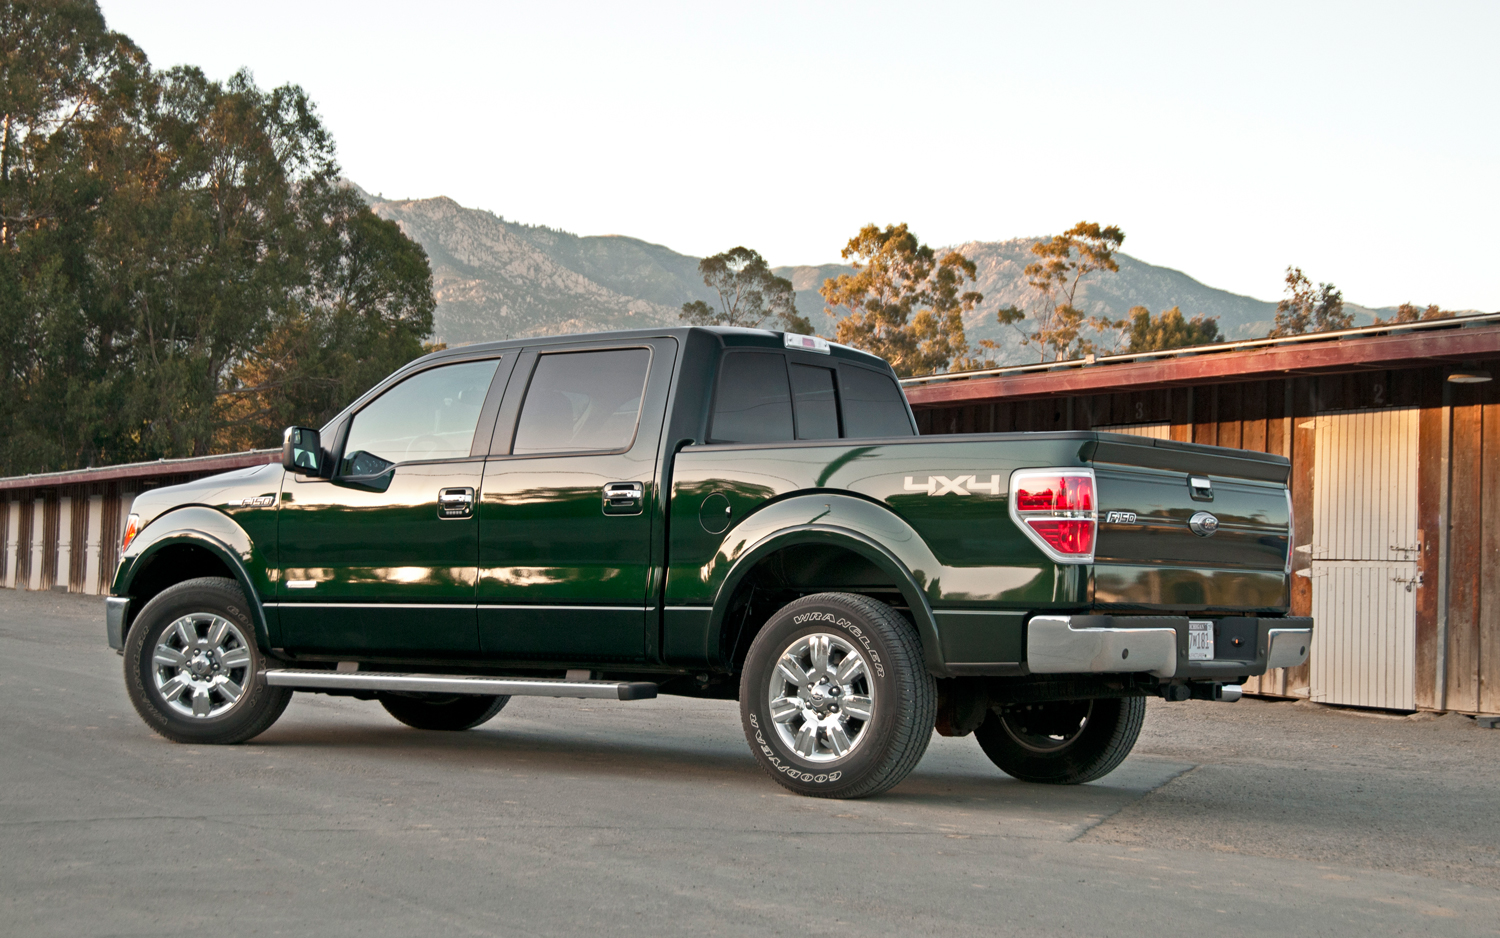 2012 Ford F-150 Lariat 4x4 EcoBoost Long-Term Update 1